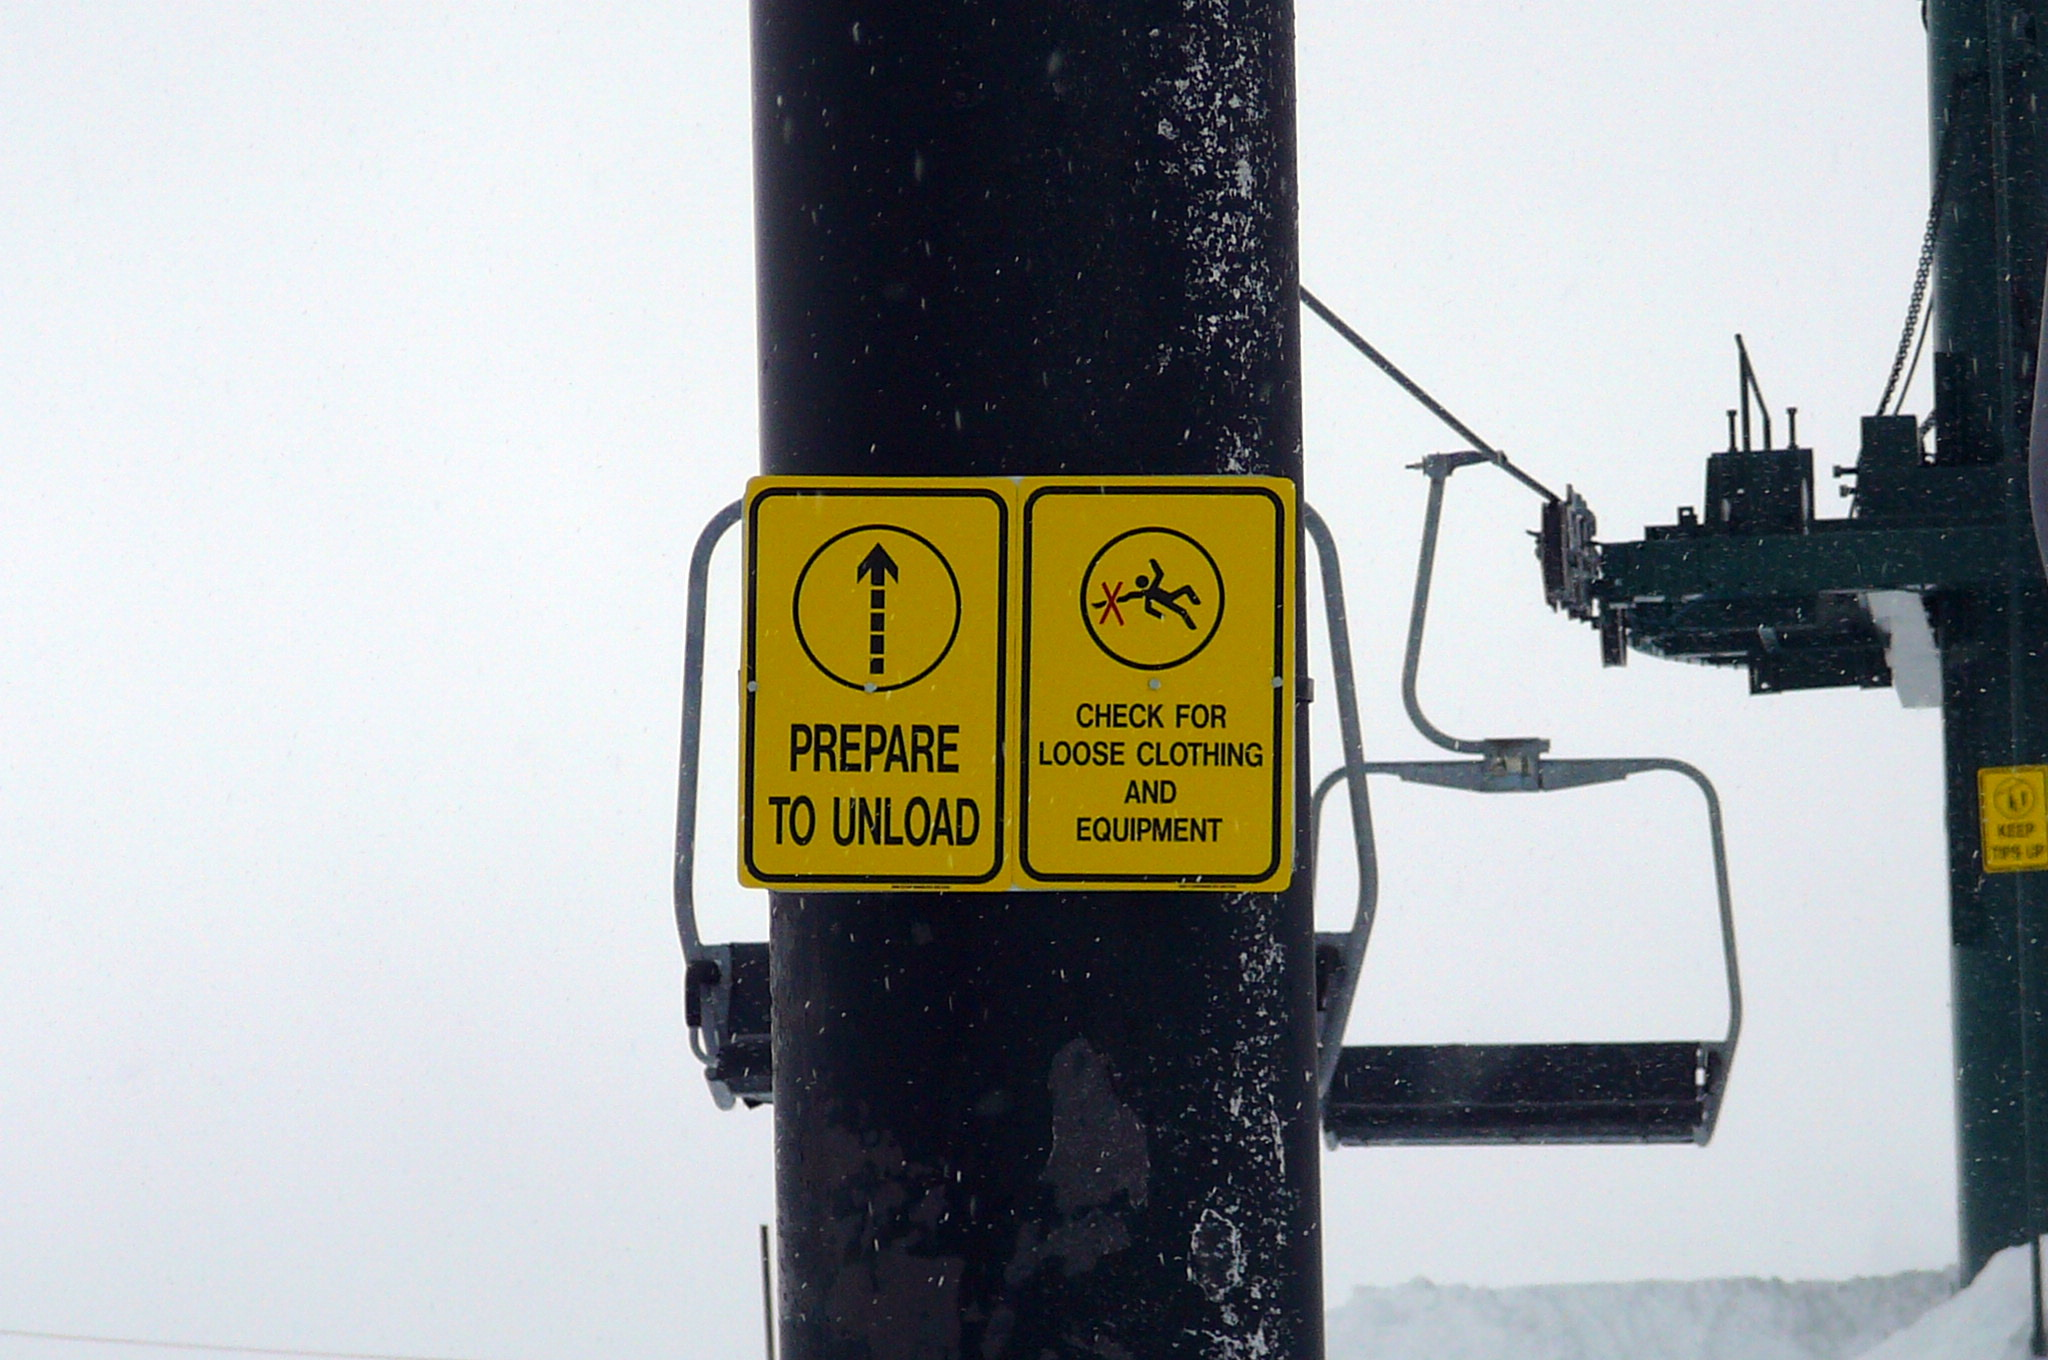 Unloading and Cautionary Signs for Ski Lift